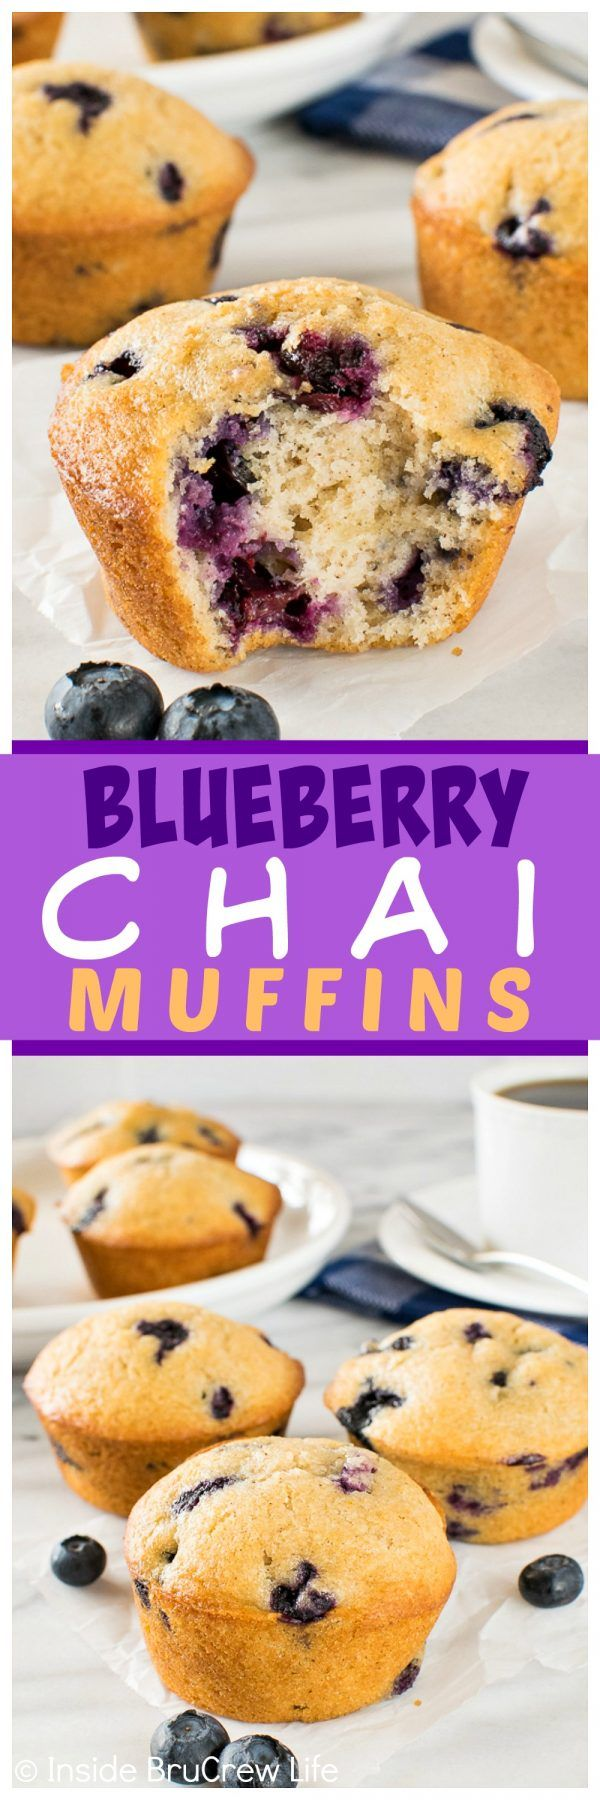 Blueberry Chai Muffins - soft fluffy muffins filled with spices and fresh berries are a delicious way to start out the morning. Great breakfast recipe!